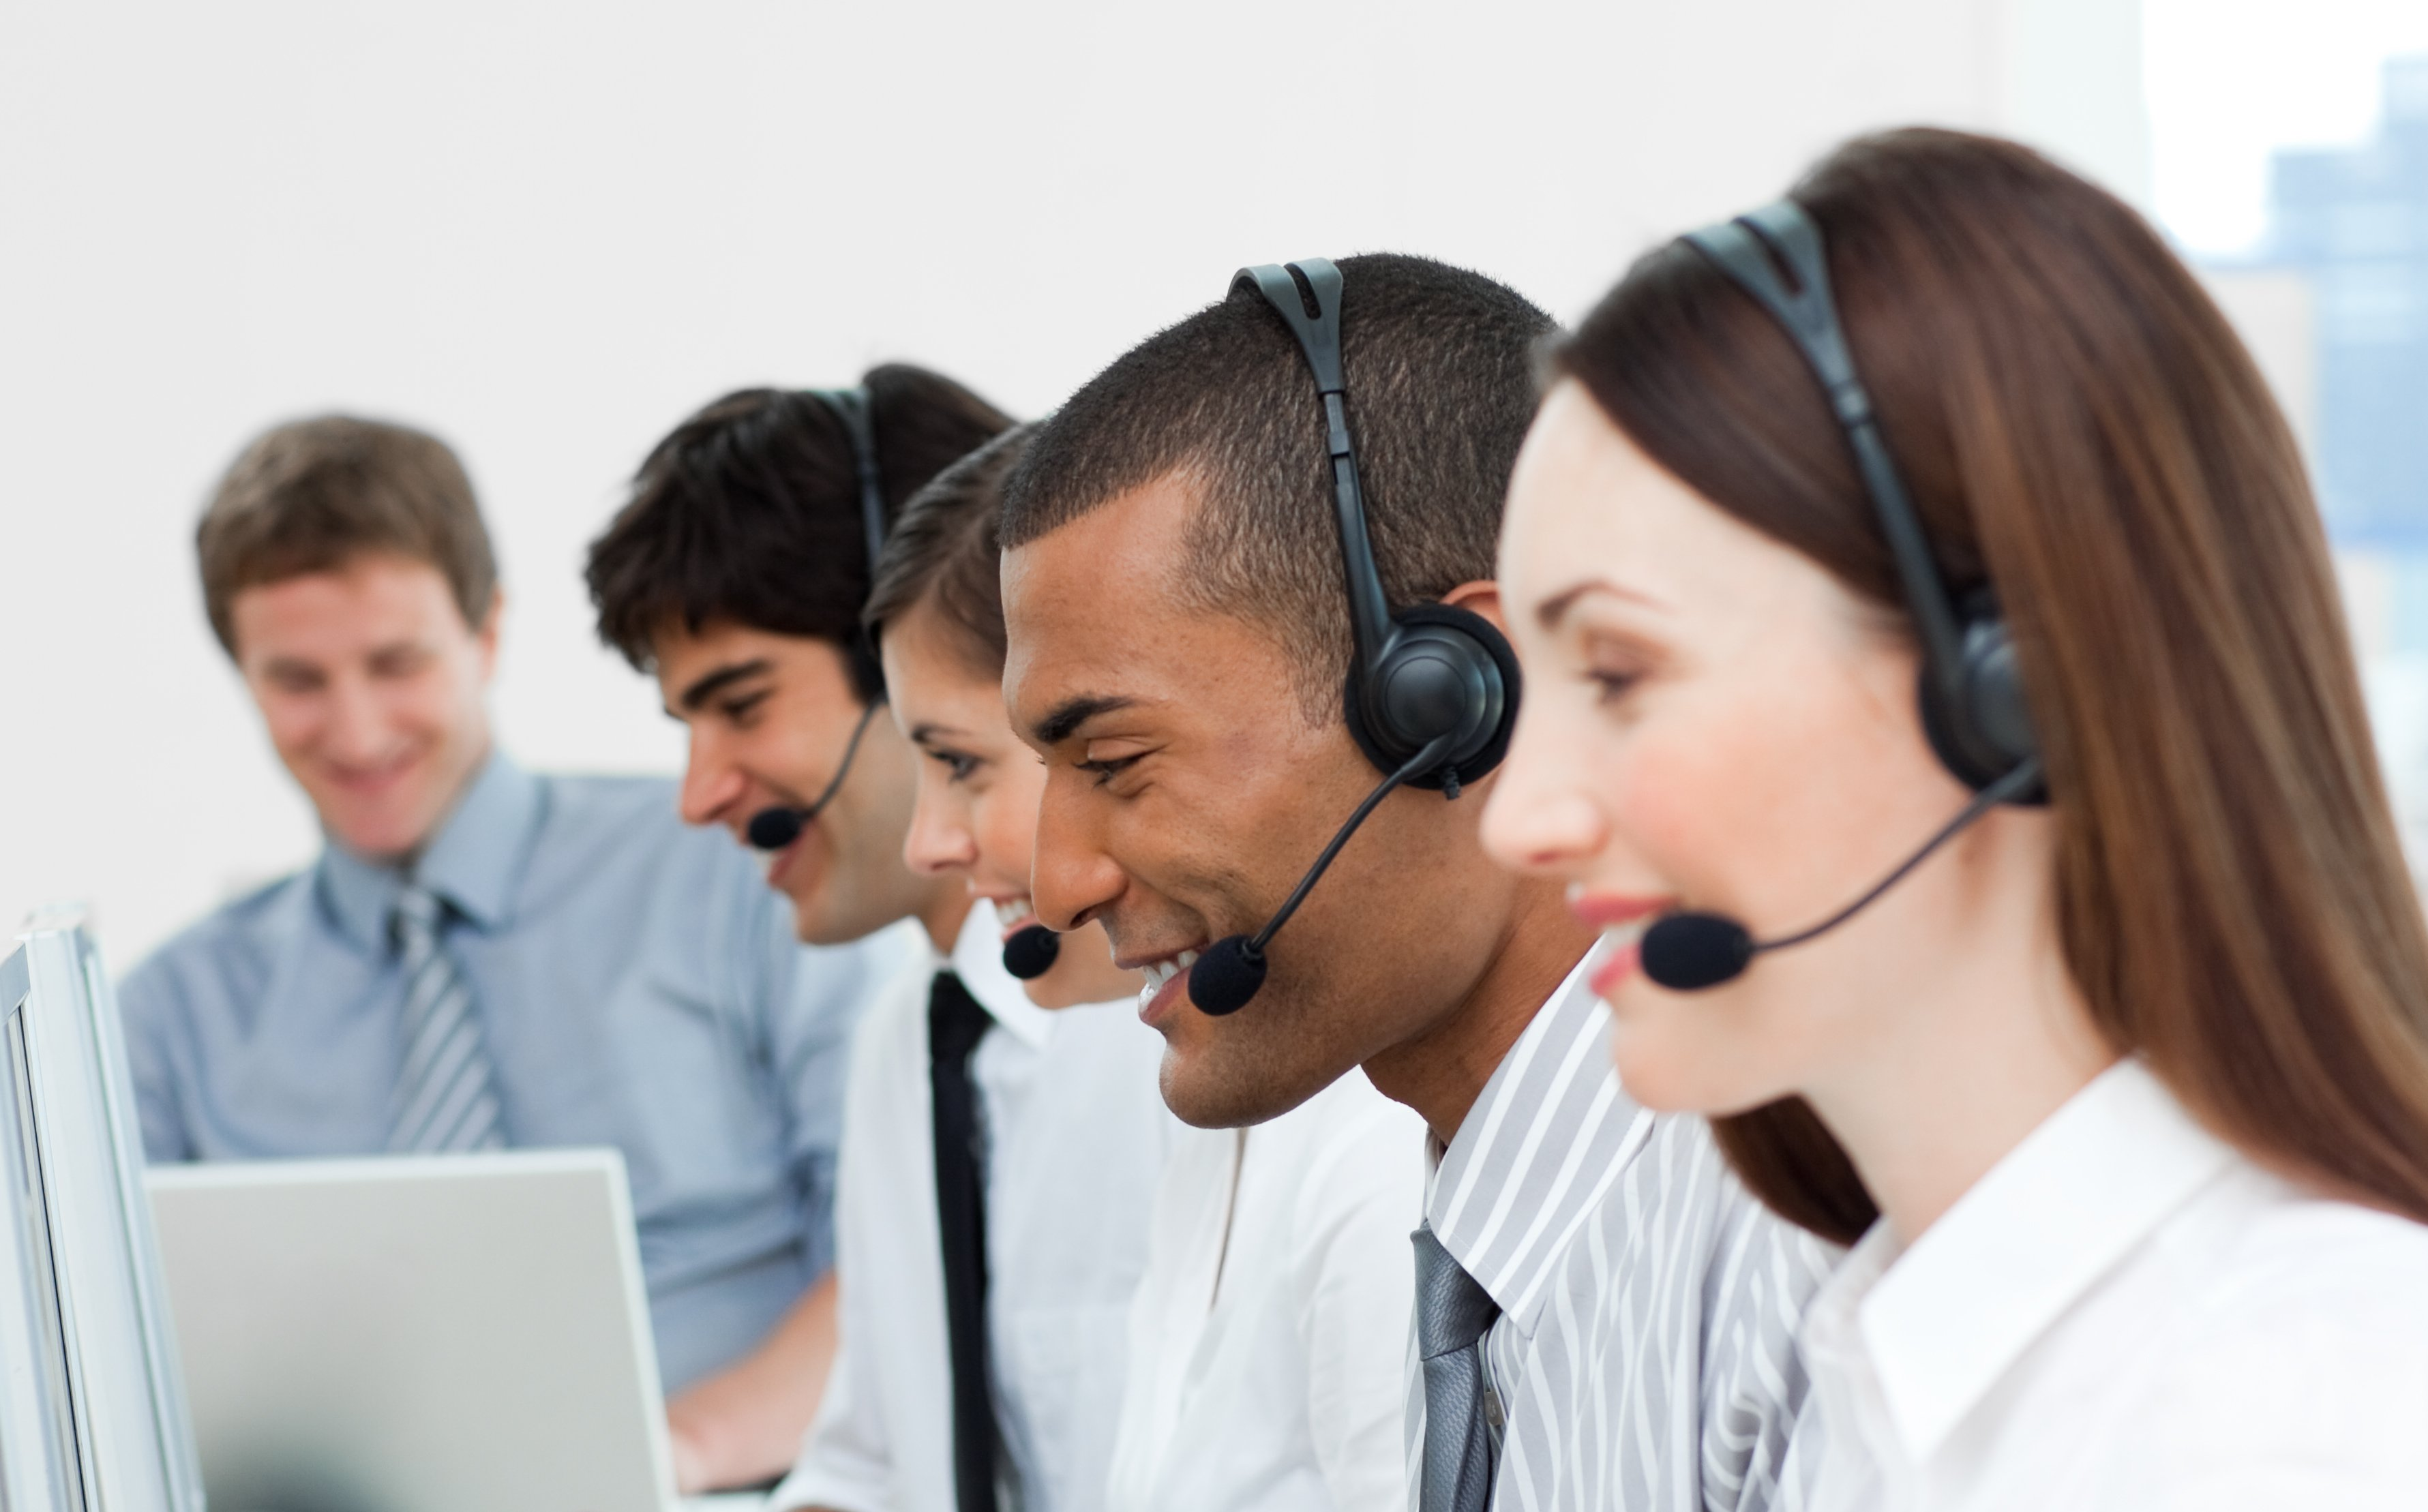 Multi-ethnic Customer Service Agents with headset on In A Call Center